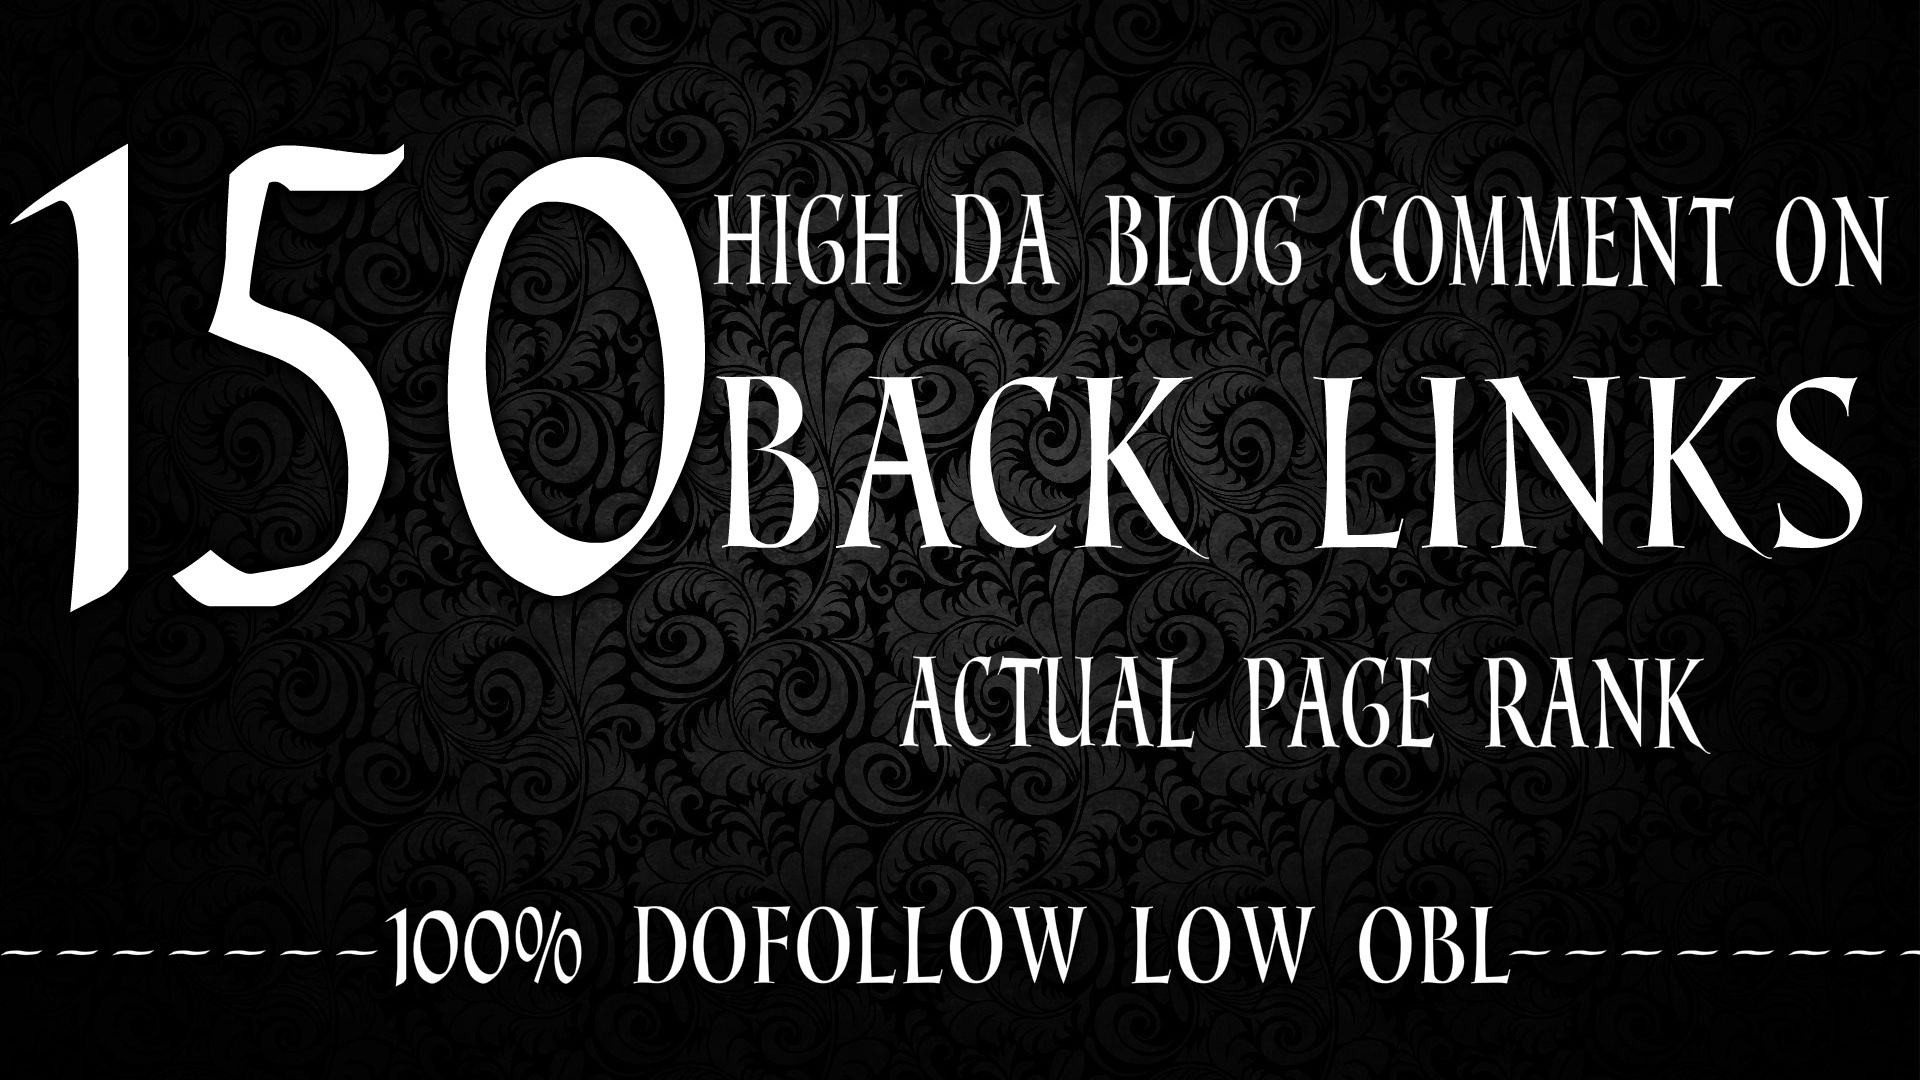 I Will Provide 150 Blog Comments High Da High Pa Backlinks